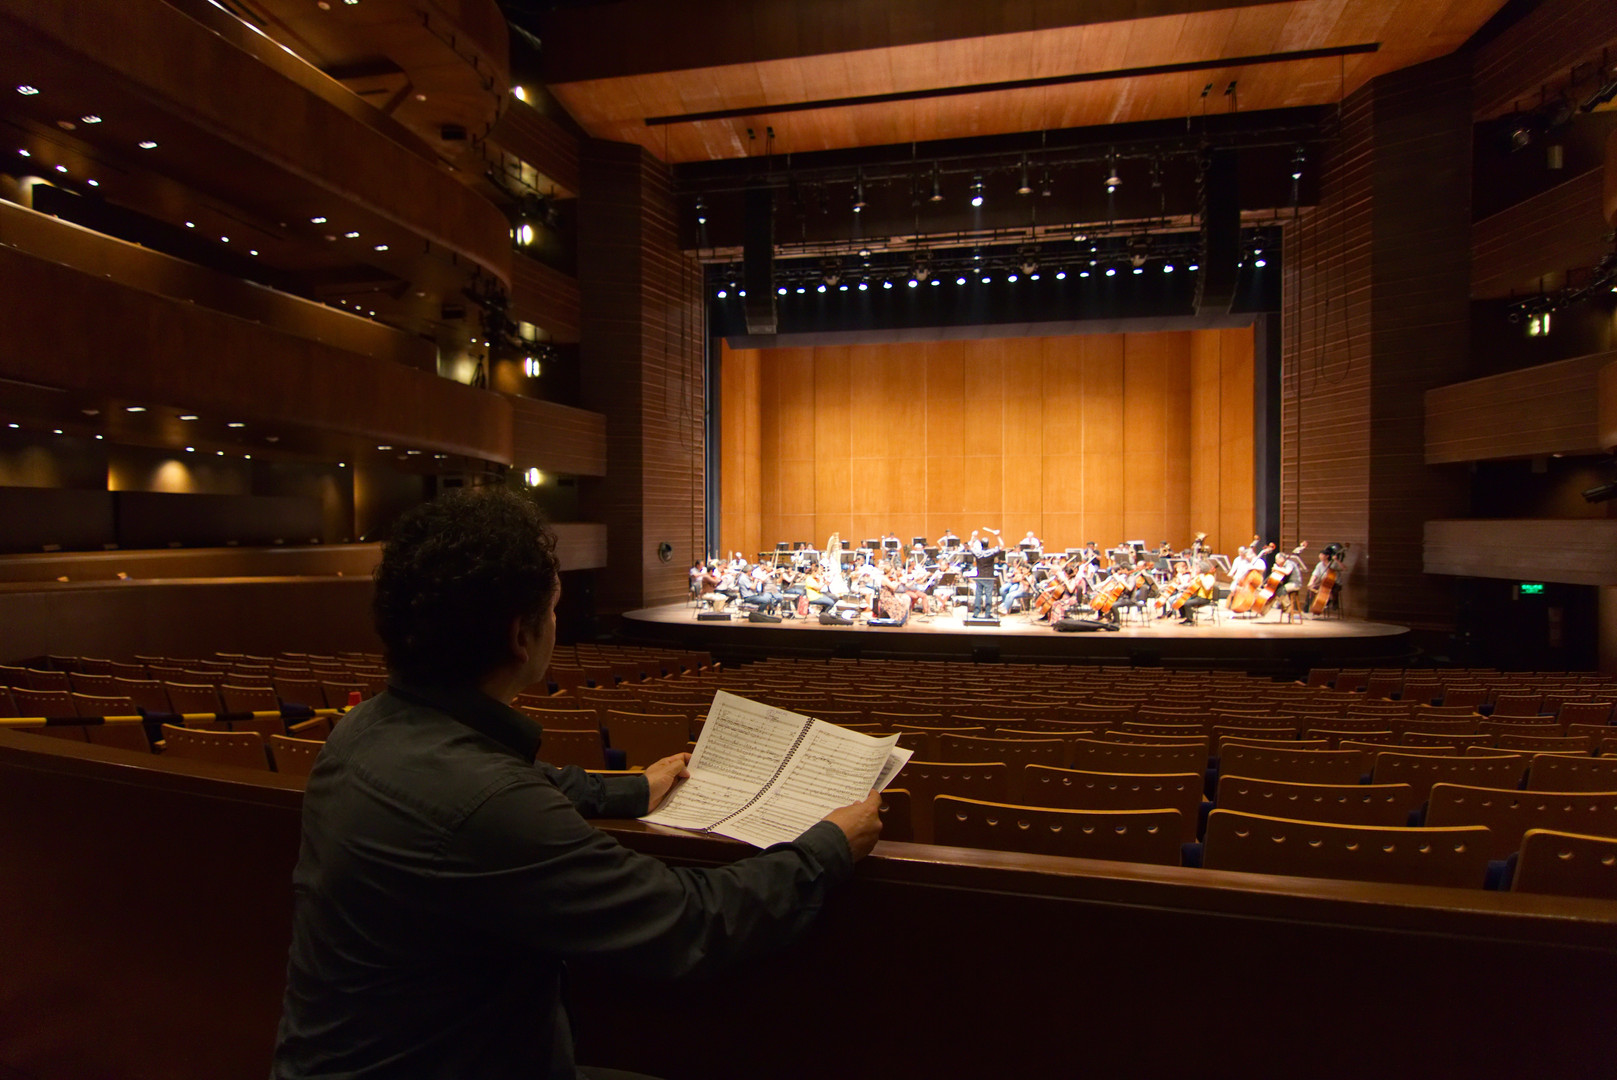 At Rehersal of my work 'Presto' for Orchestra - Gran Teatro Nacional. Lima